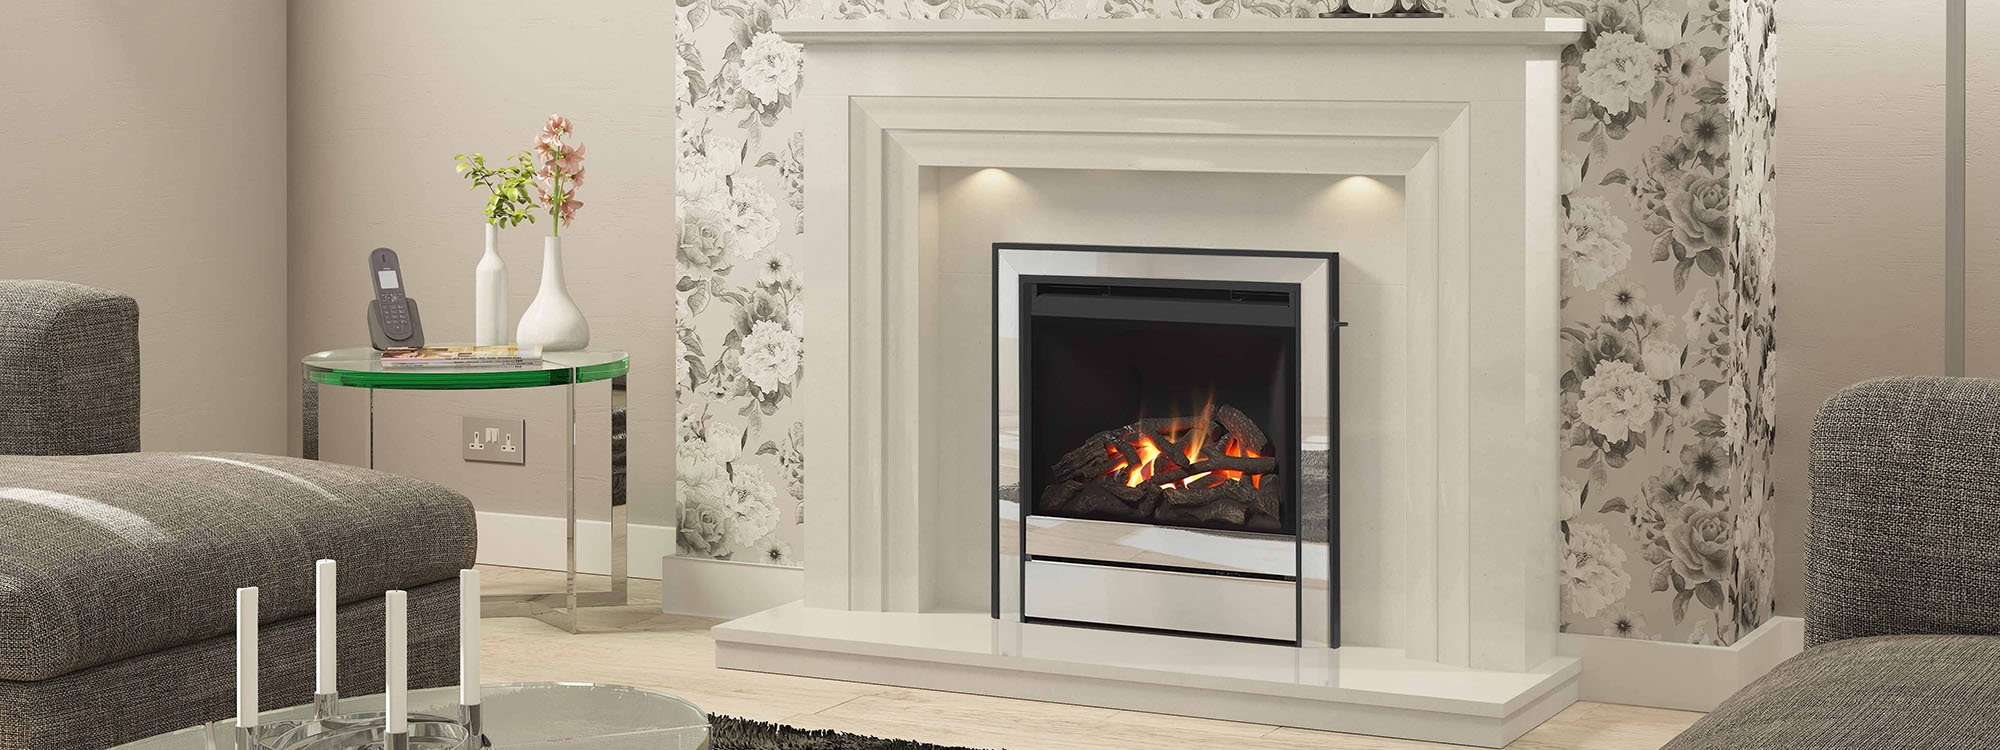 Martin James Fireplaces Nottingham | Gas & Electric Fires